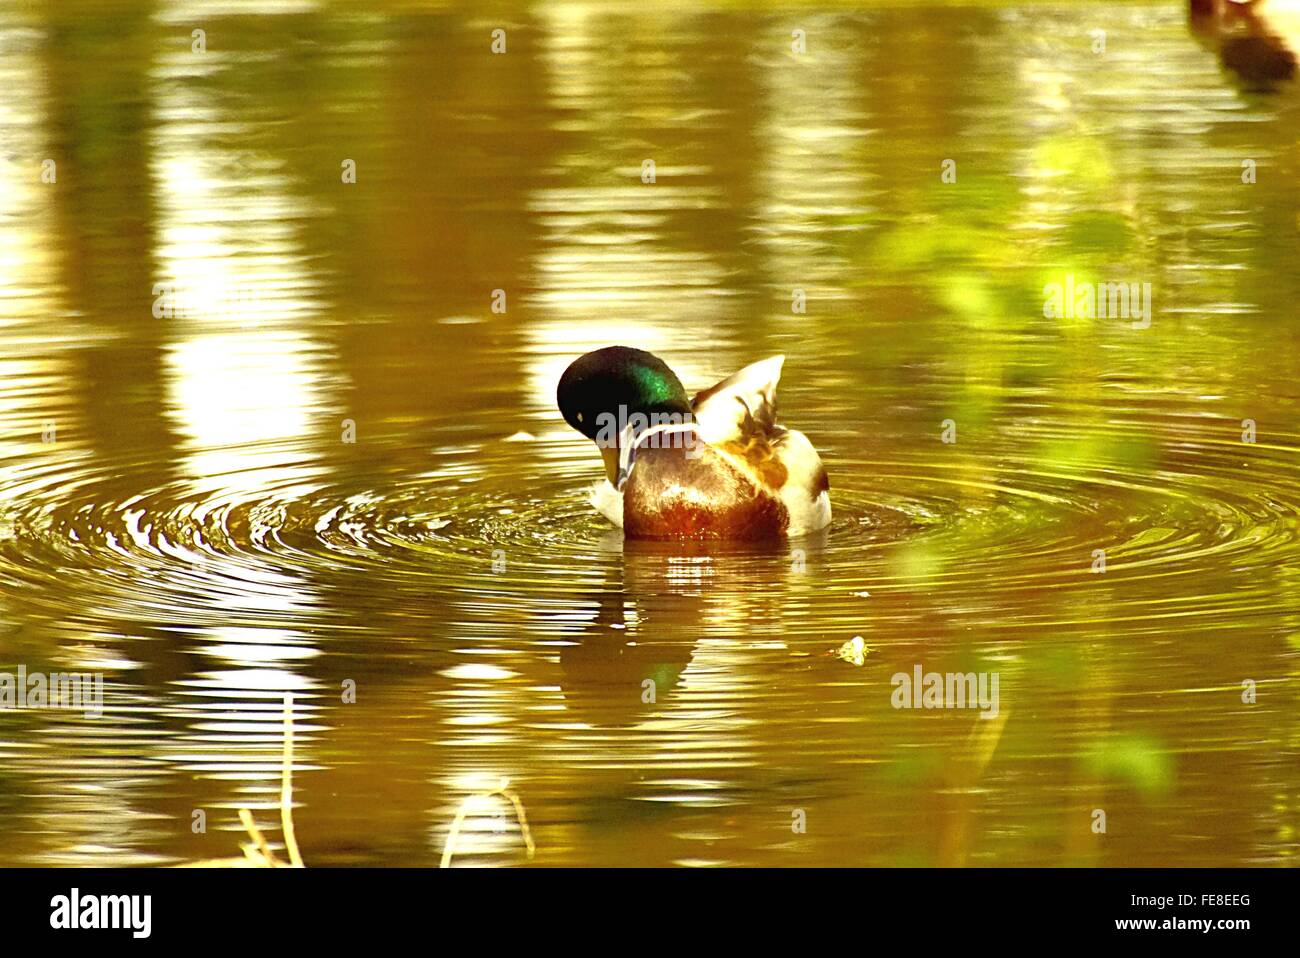 High Angle View Of Mallard Duck Swimming In Pond Stock Photo